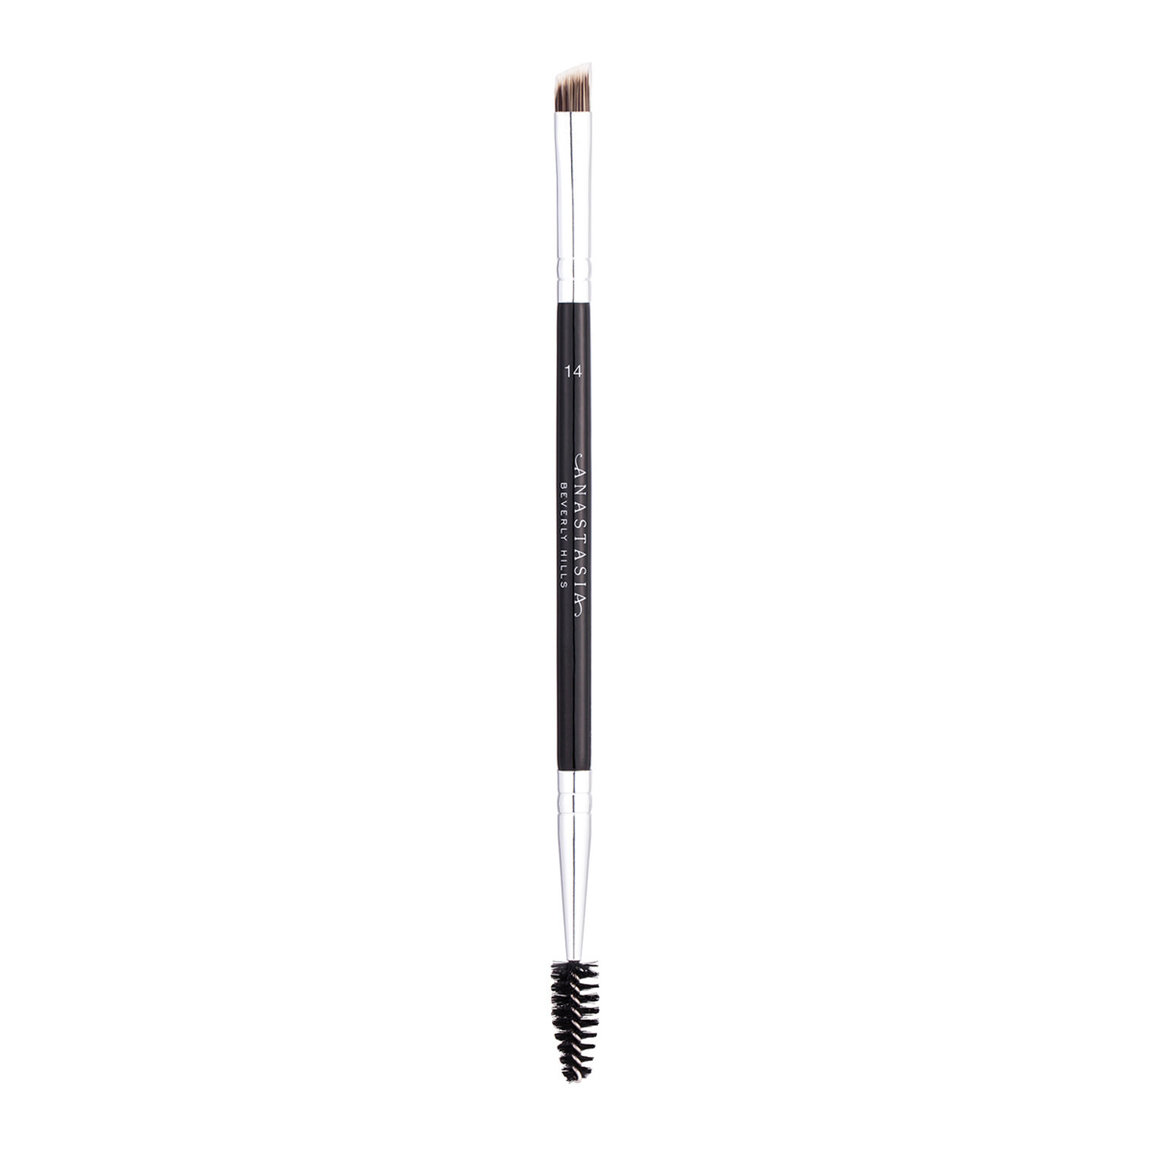 Anastasia Beverly Hills Brush 14 Dual-Ended Firm Detail Brush product smear.